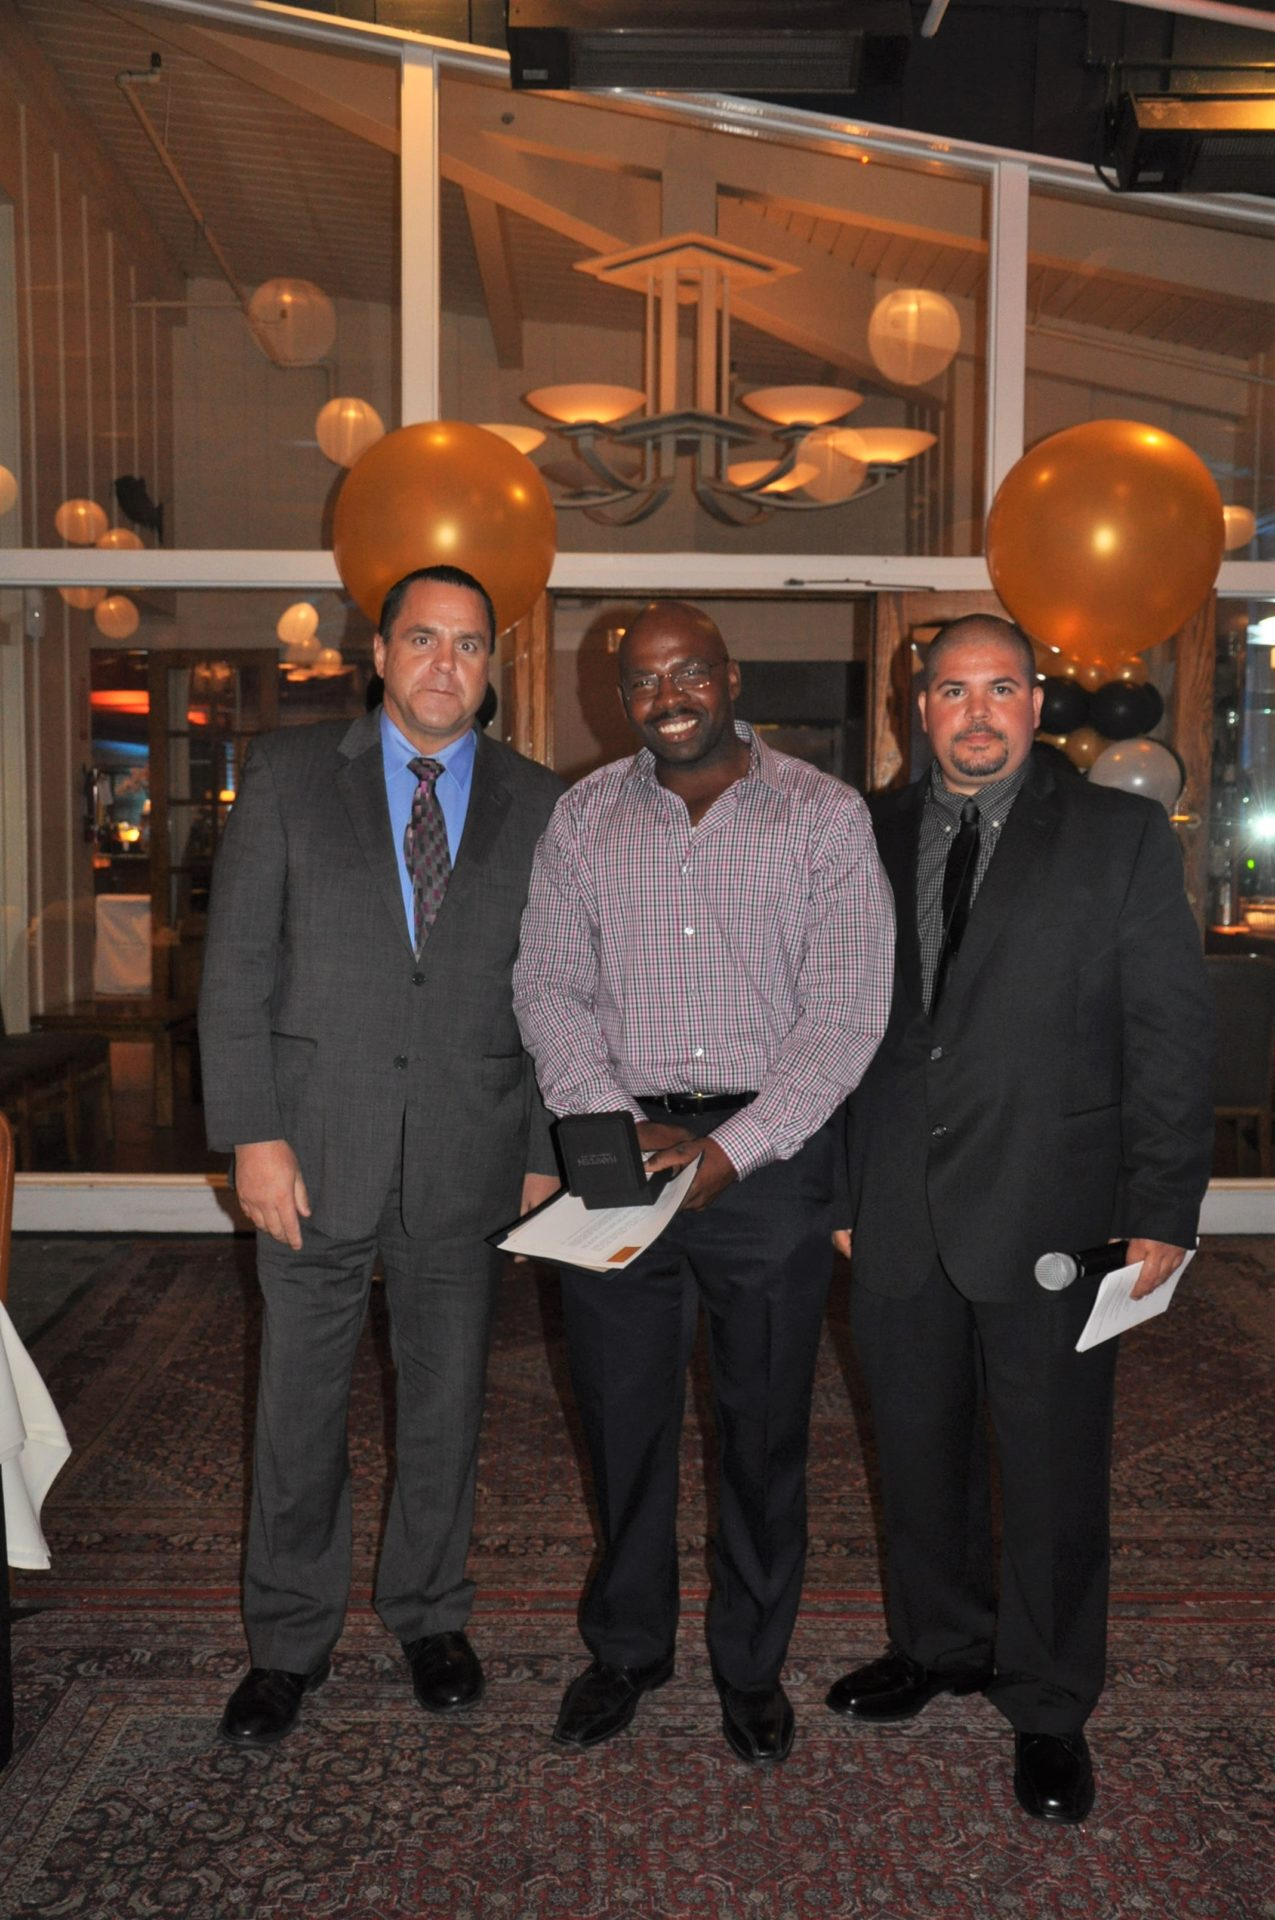 Image from the Gallery: Apprentice Graduation – Oakland, CA